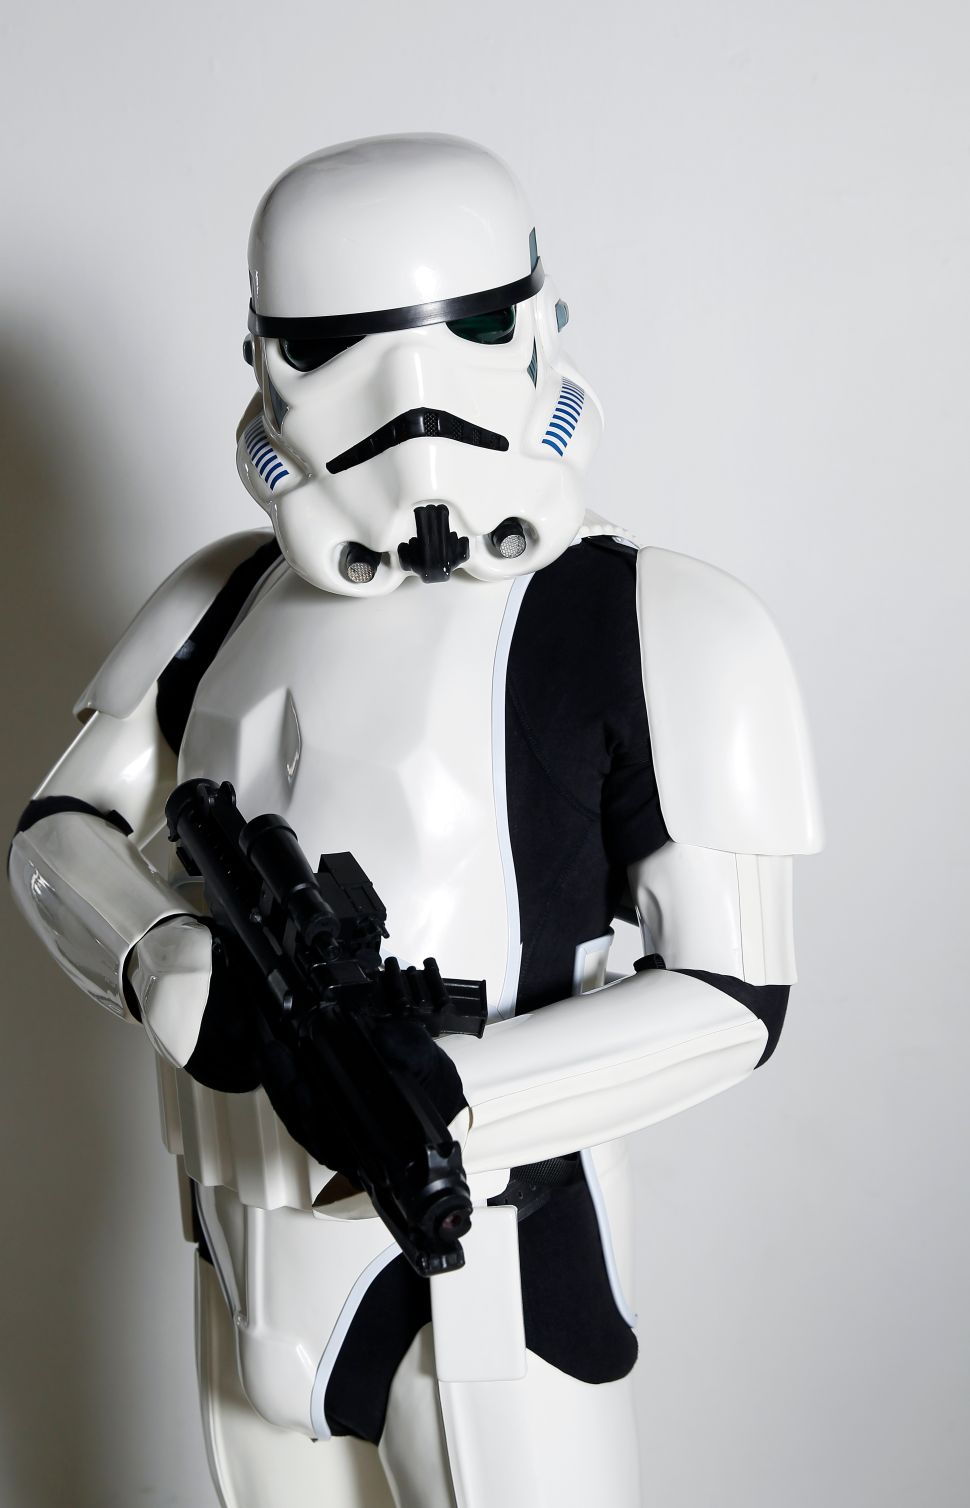 'Star Wars: The Force Awakens' Teaser Brings Out the Galaxy's Racists